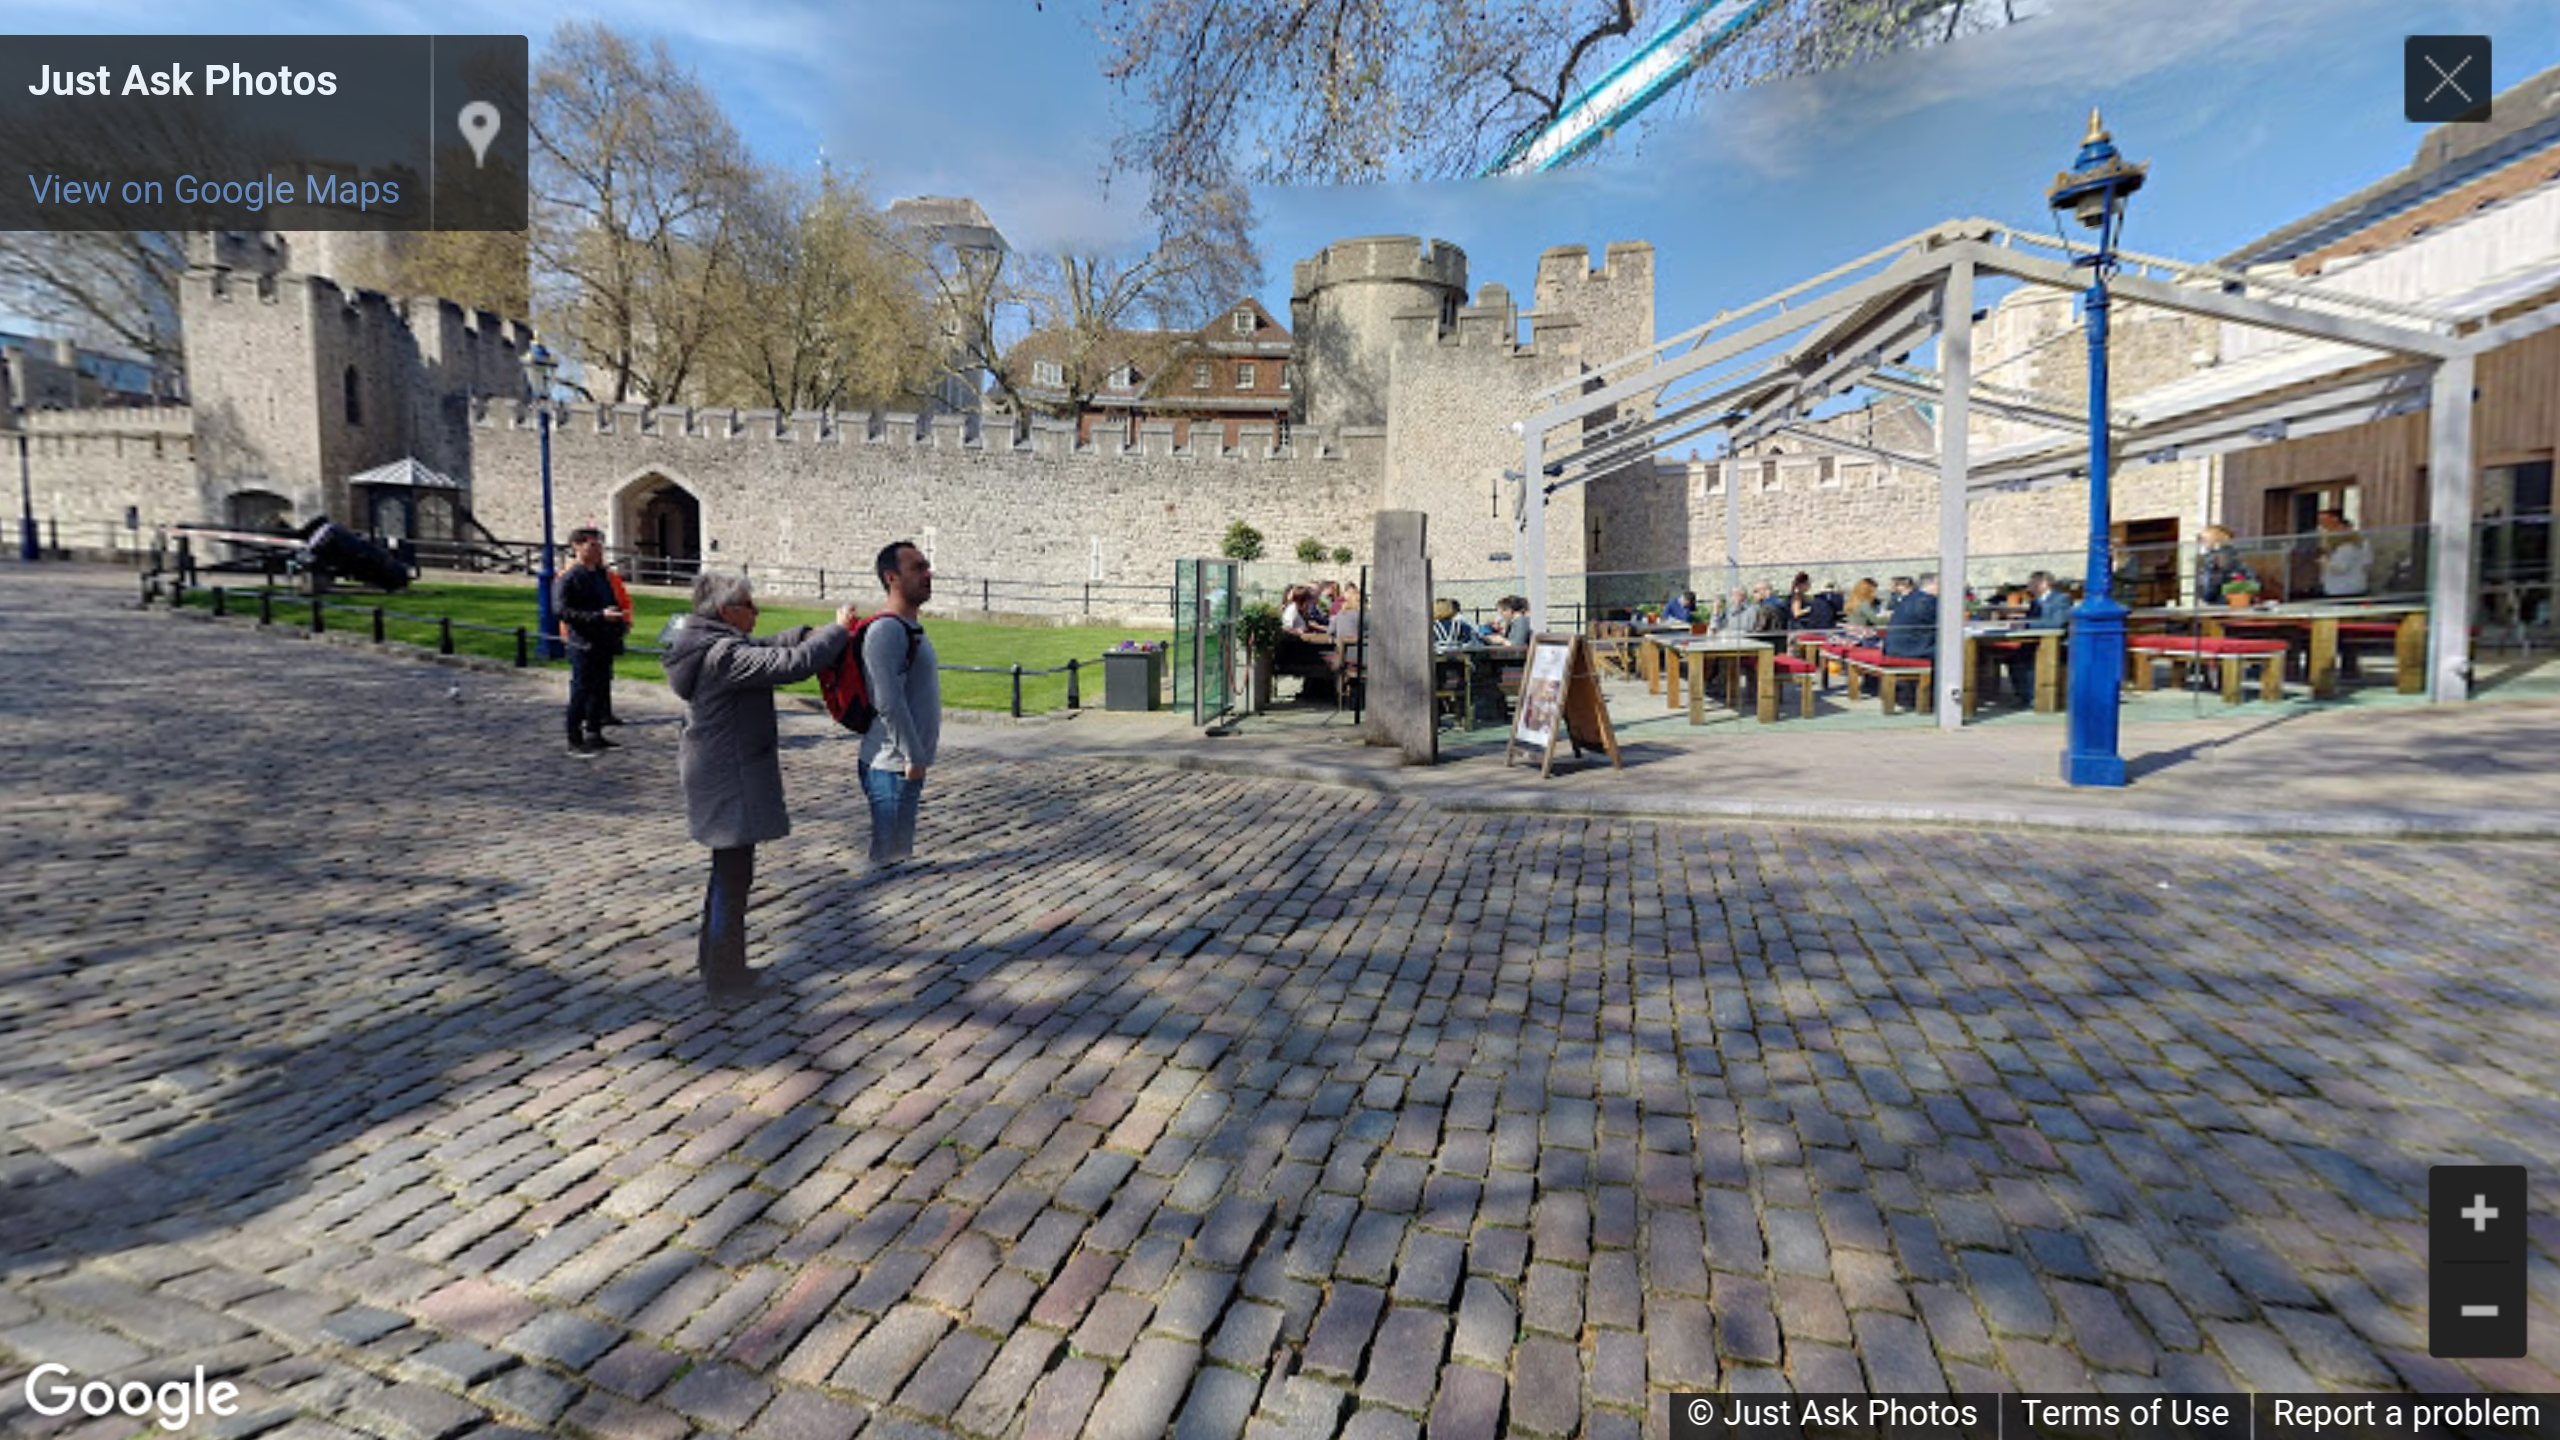 The Perkin Reveller, The Wharf, Tower of London, London, UK photosphere